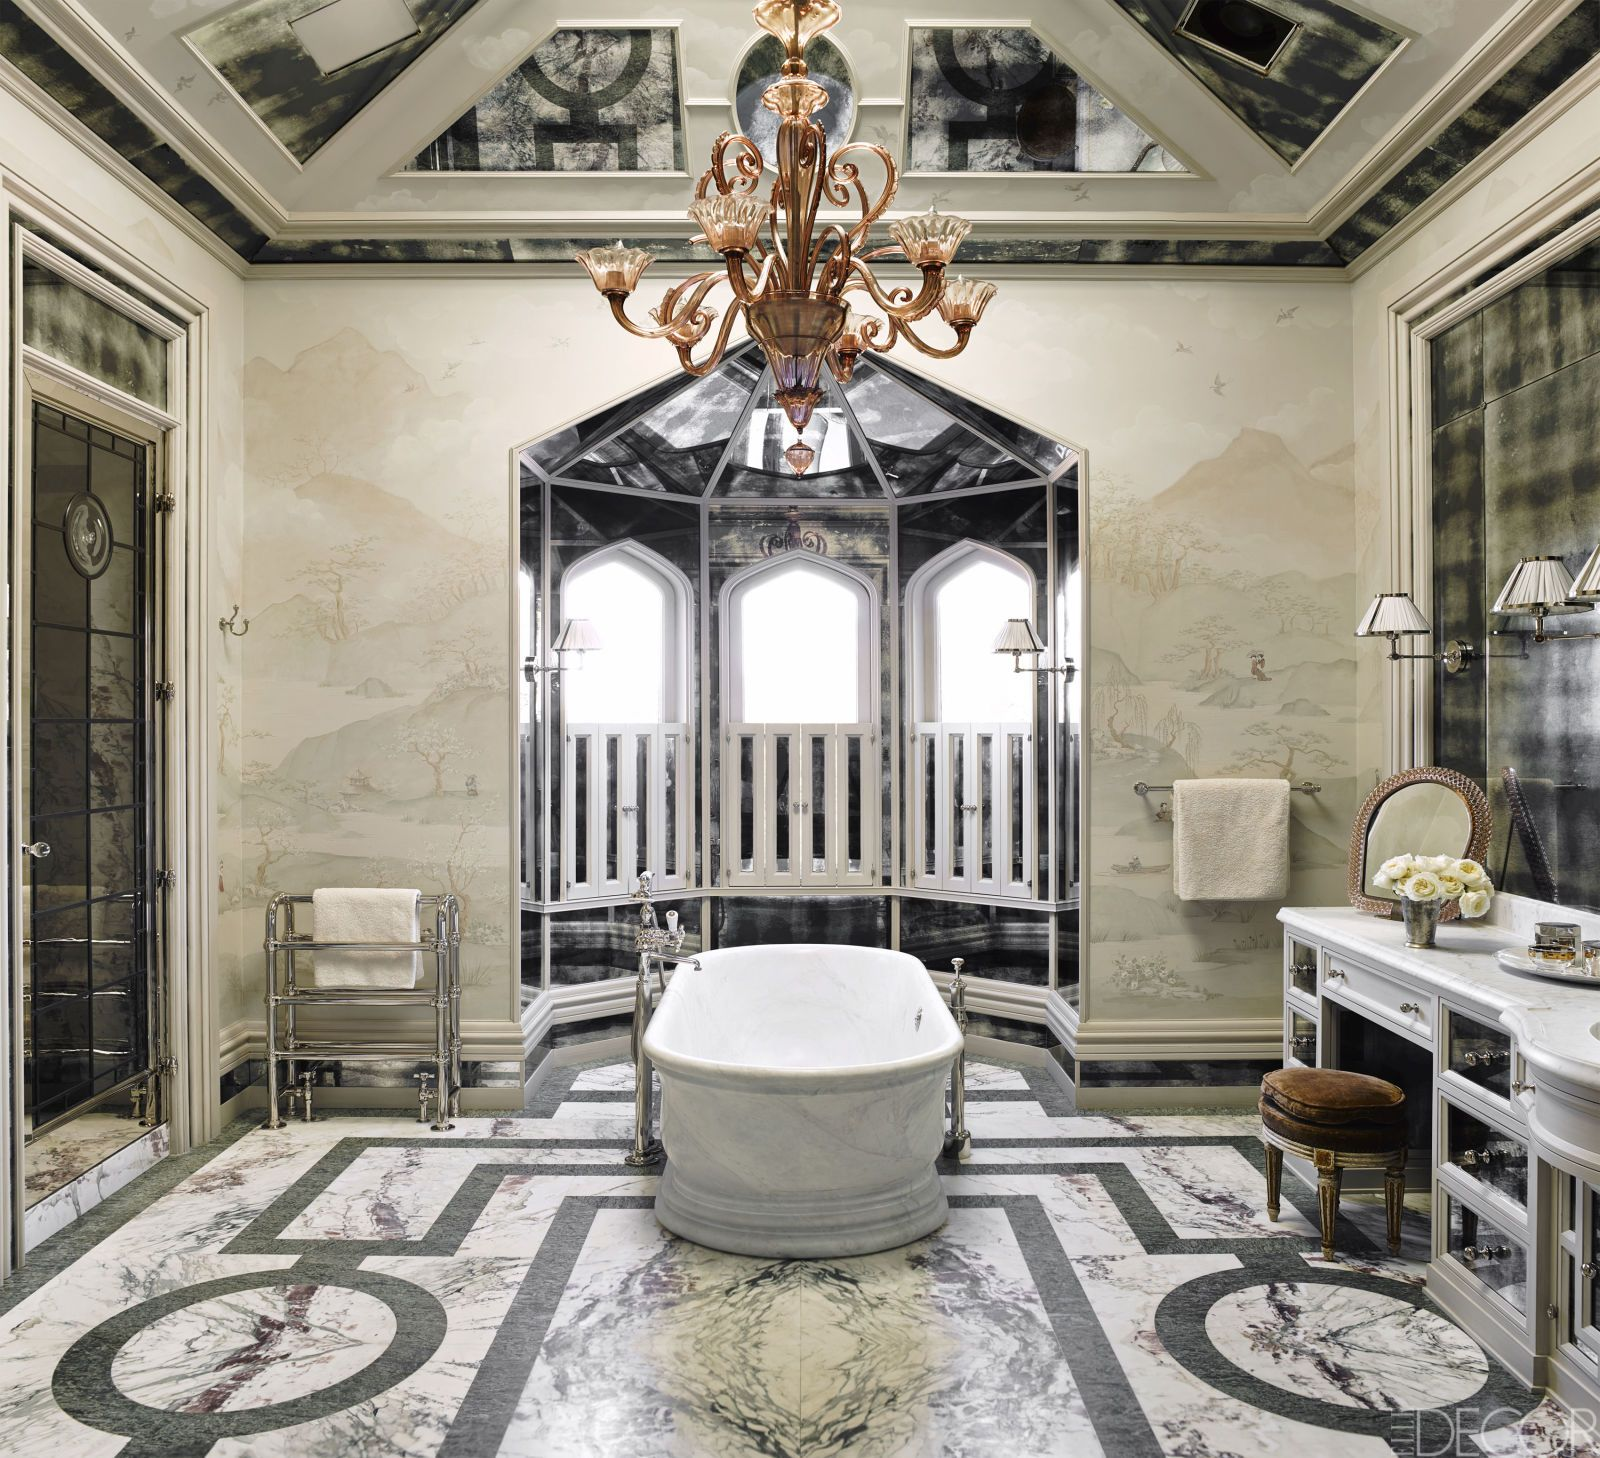 20 Luxurious Bathtubs That Completely Steal The Show | House tours ...